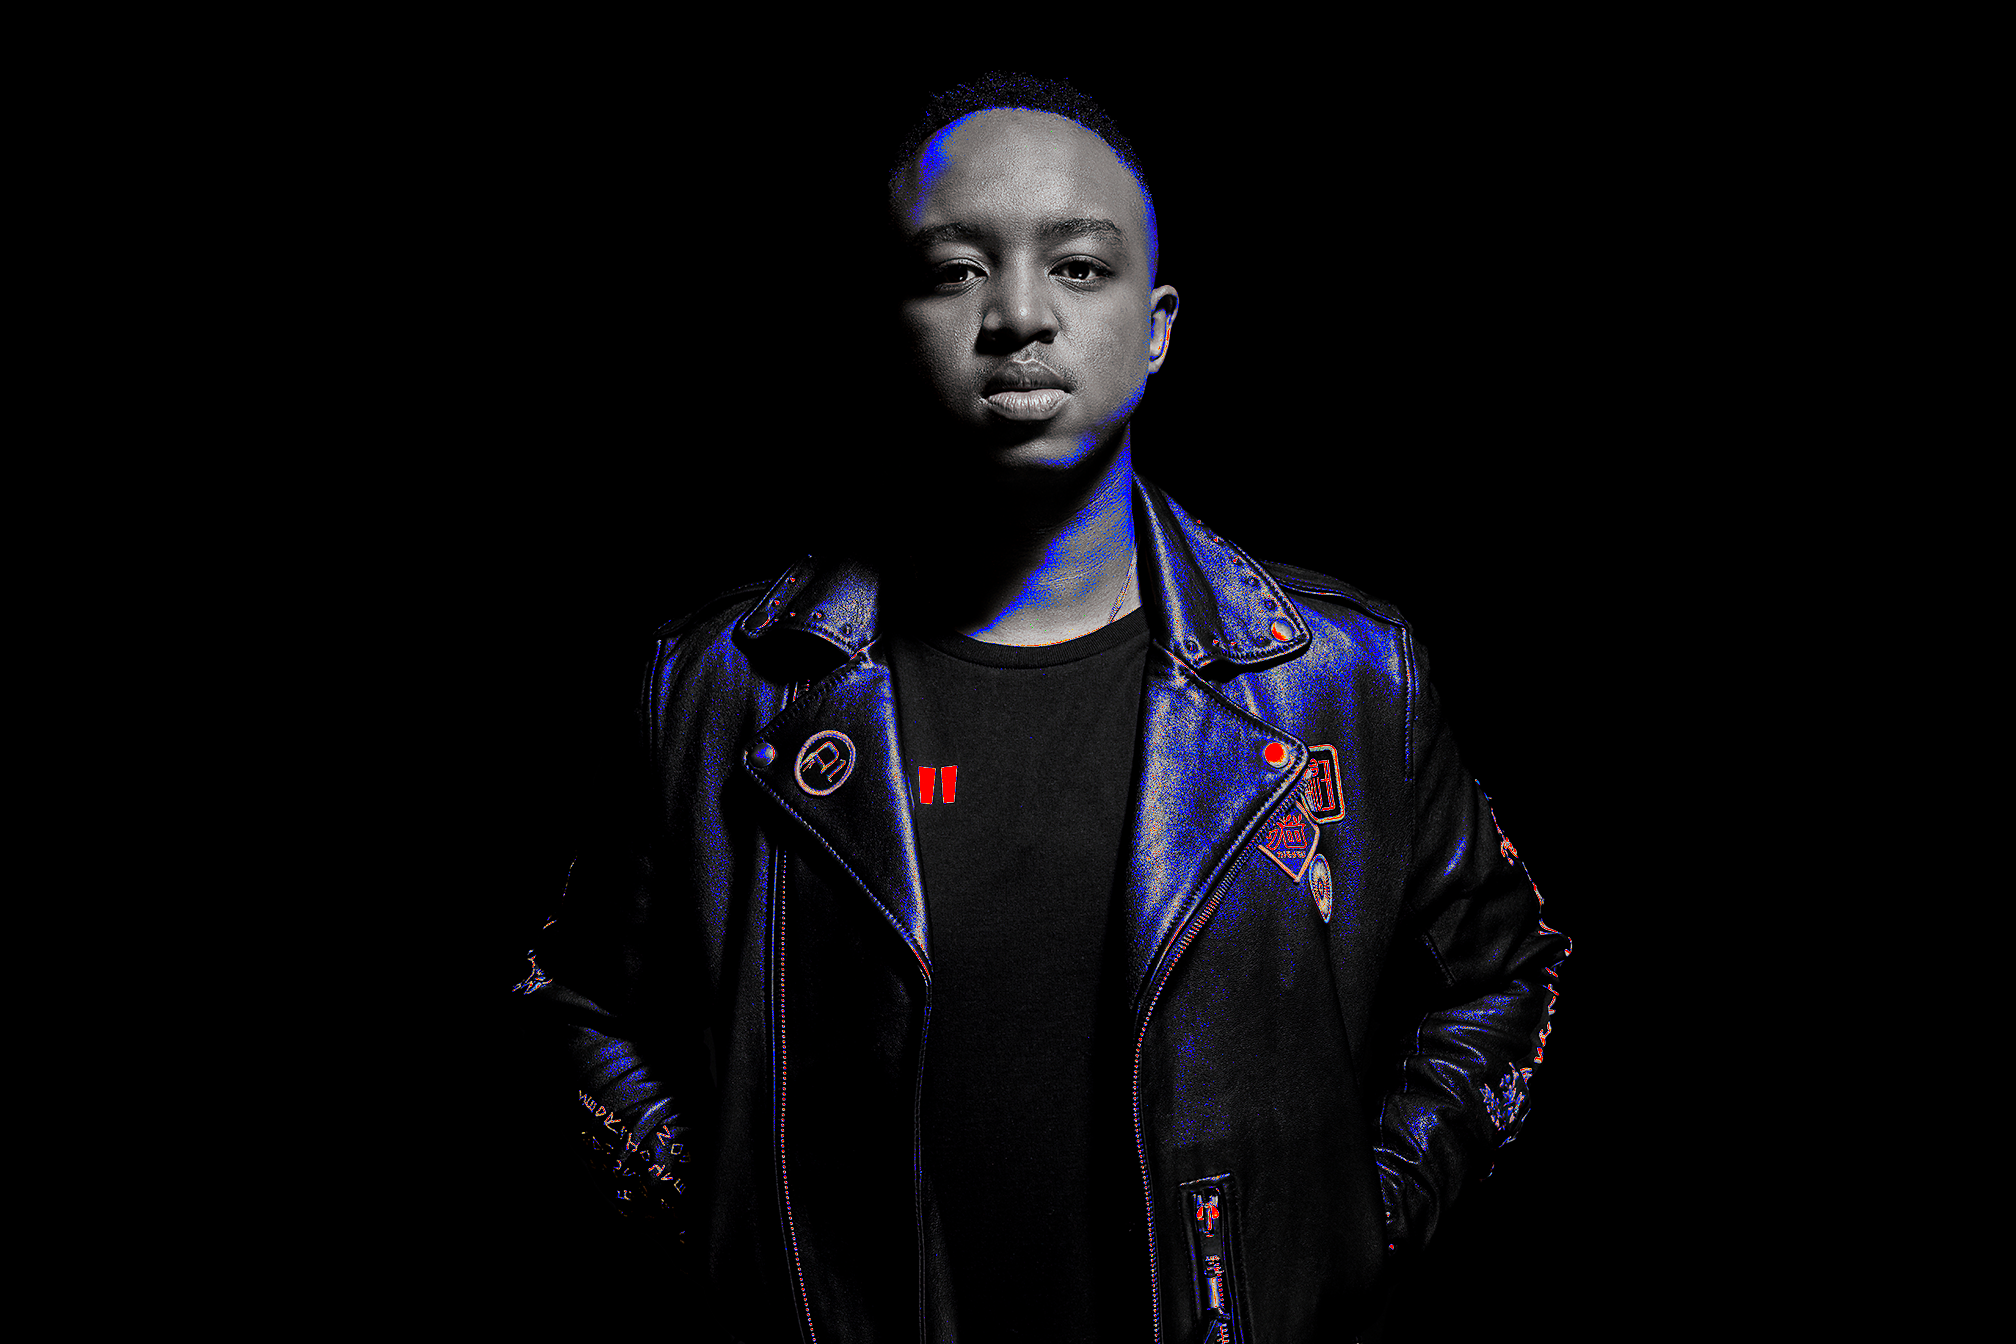 Shimza is using house music to connect South Africa with the rest of the world - Artists - Mixmag